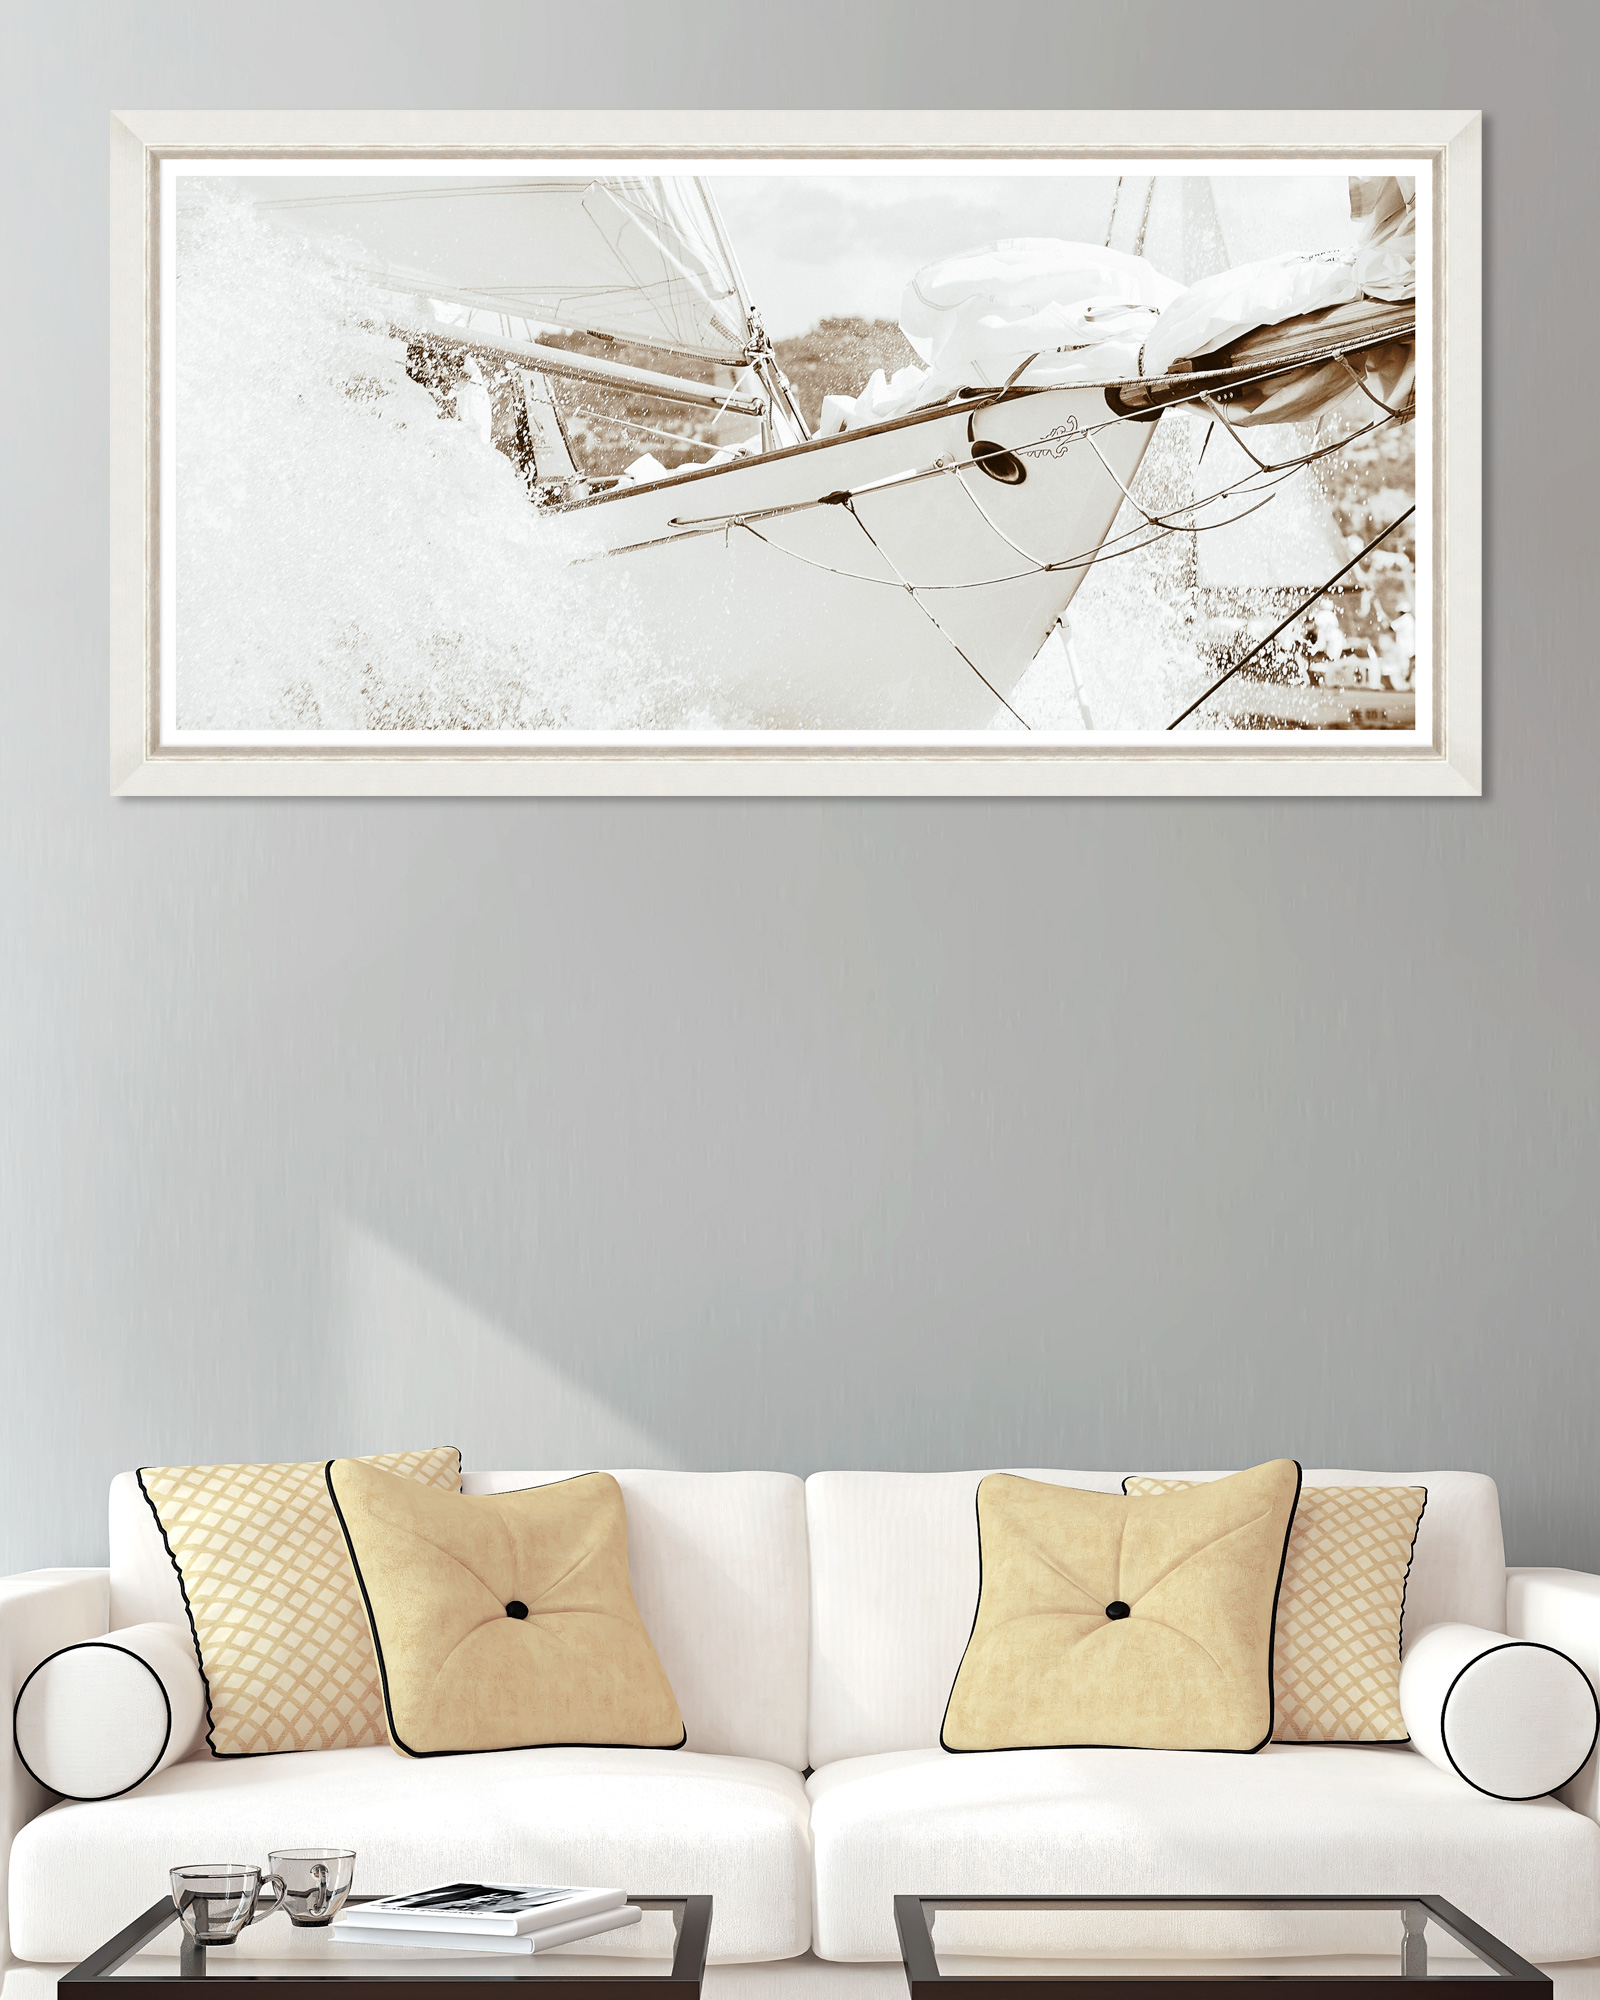 Tablou Framed Art Yachting Sepia imagine